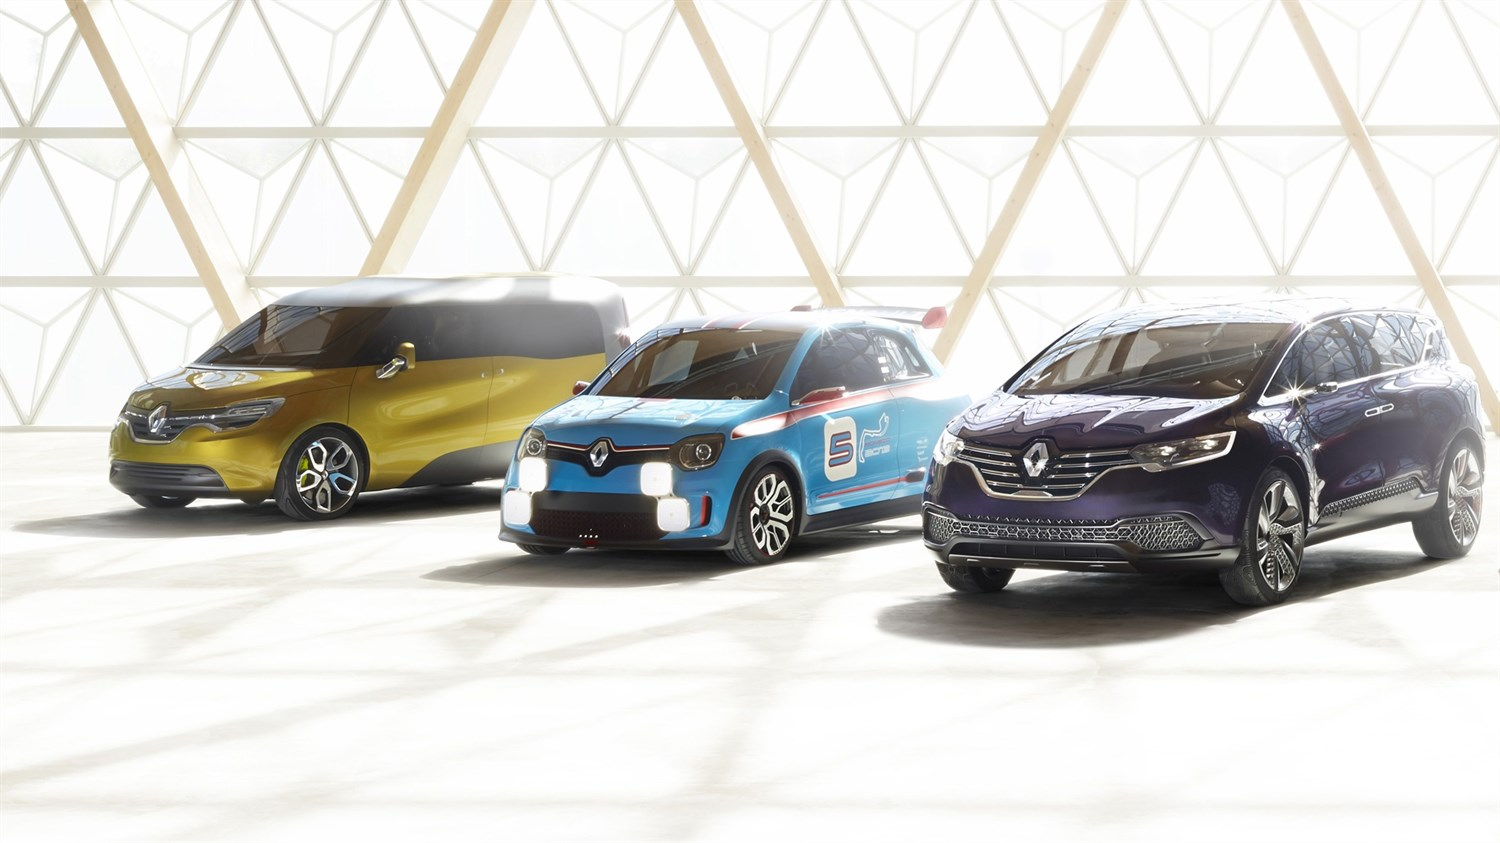 Renault - concept cars range - 3 vehicles 3/4 left front end view